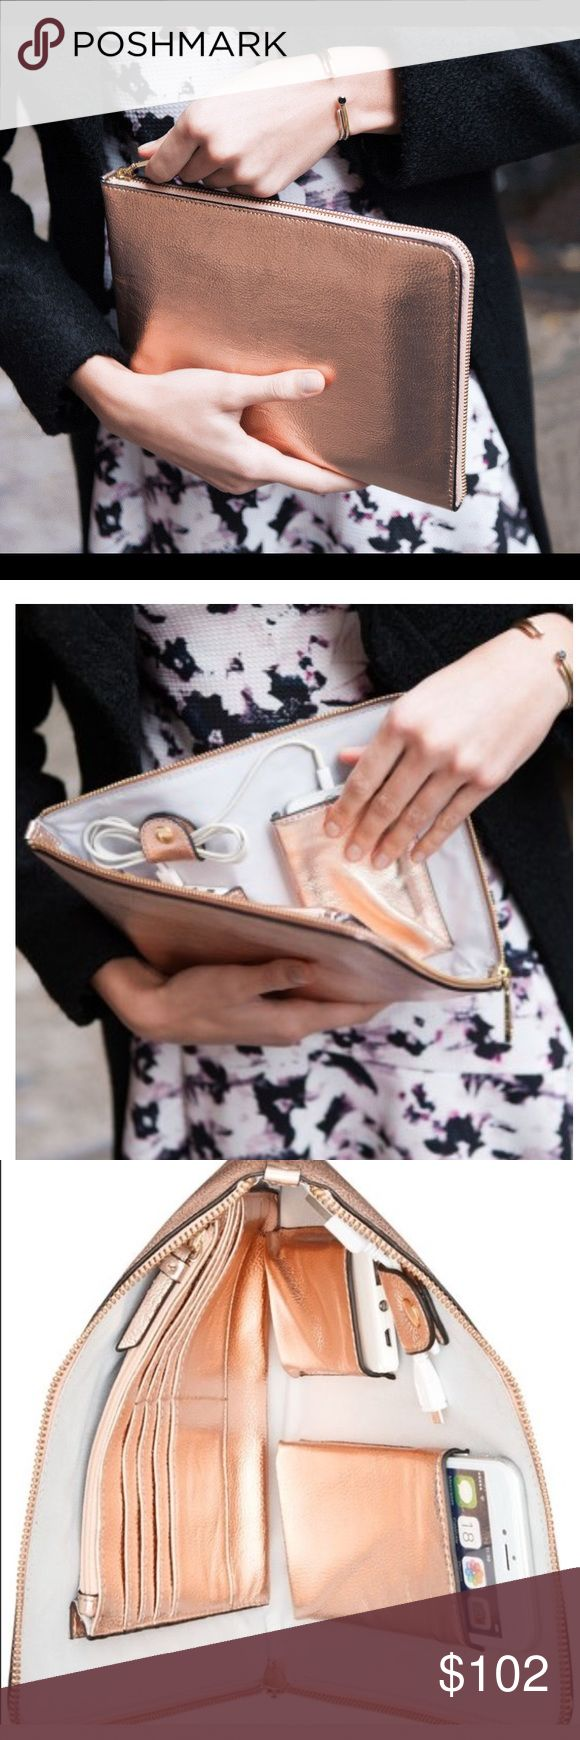 Ivanka Trump Purse Tech Clutch w PowerBank✅OFFER ✅NEW!!✅MAKE A OFFER-just priced higher2avoid superlow offers &2pricedrop2Dscnt s&h✅Ivanka Trump Purse /TechClutch wPower Bank NEW-Rio Sleeve in Rose Gold Color-1st 3pics are stock photos2demonstrate functionalityall other photos are actual product NEW IN BOX, AUTH, retailvalue $101.50also silver in sep listing❌there is no white coloring in the purse❌✅will fit iPhone 6+7+ as in pic, standard ipad is same size so a lil too big⭐️⭐️bag…